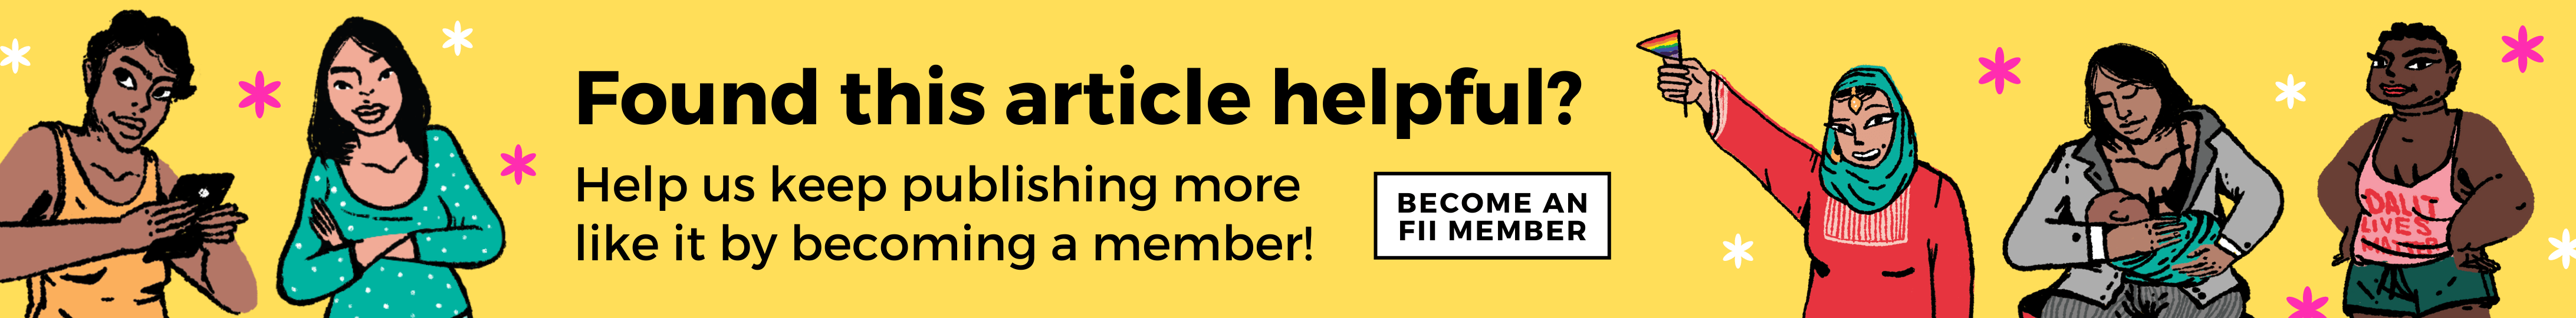 Become an FII Member